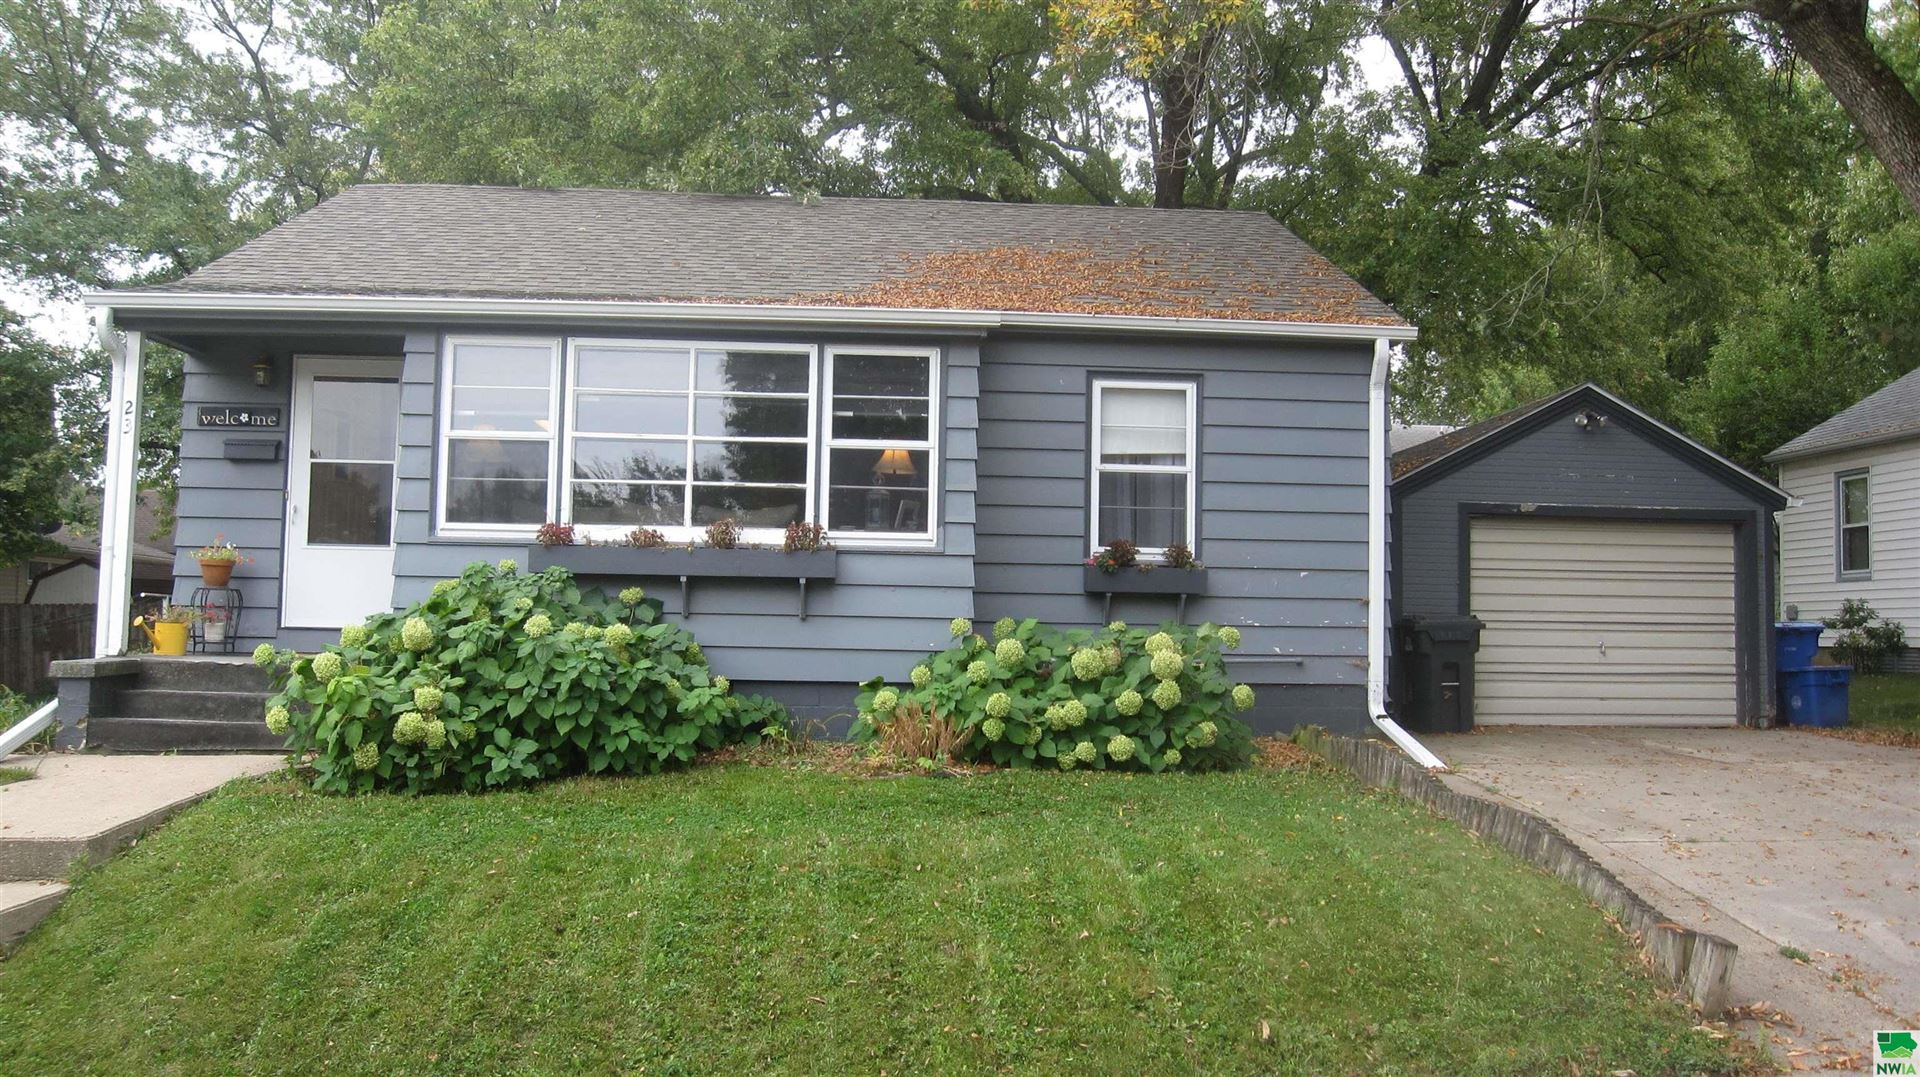 Photo for 23 8th Street SW, Sioux Center, IA 51250-1332 (MLS # 815122)